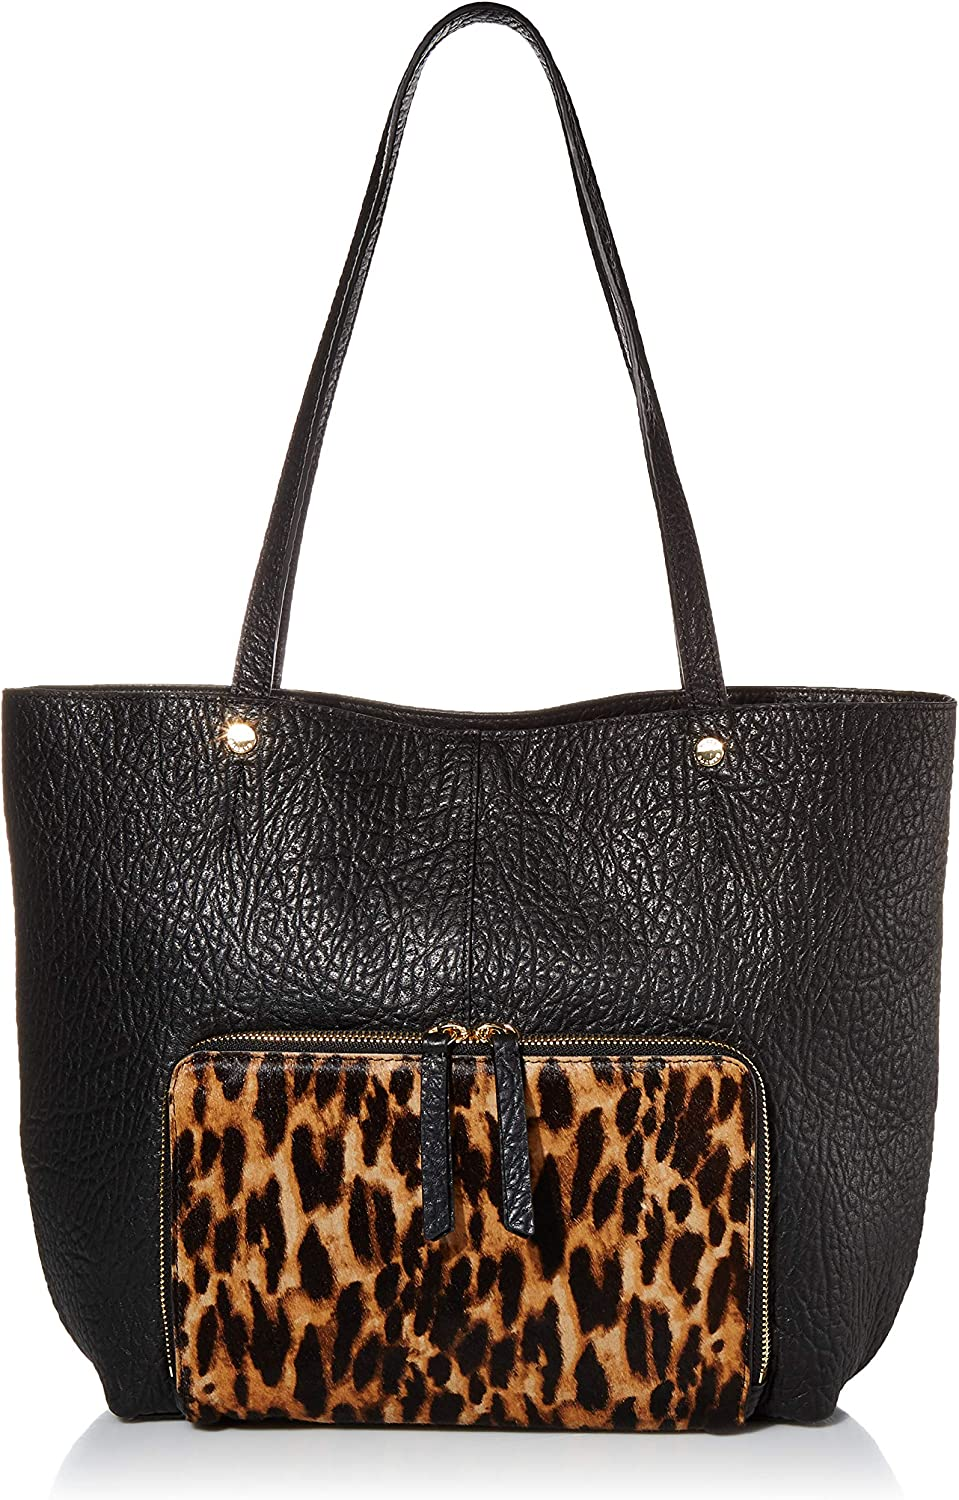 Vince Camuto Cas Tote